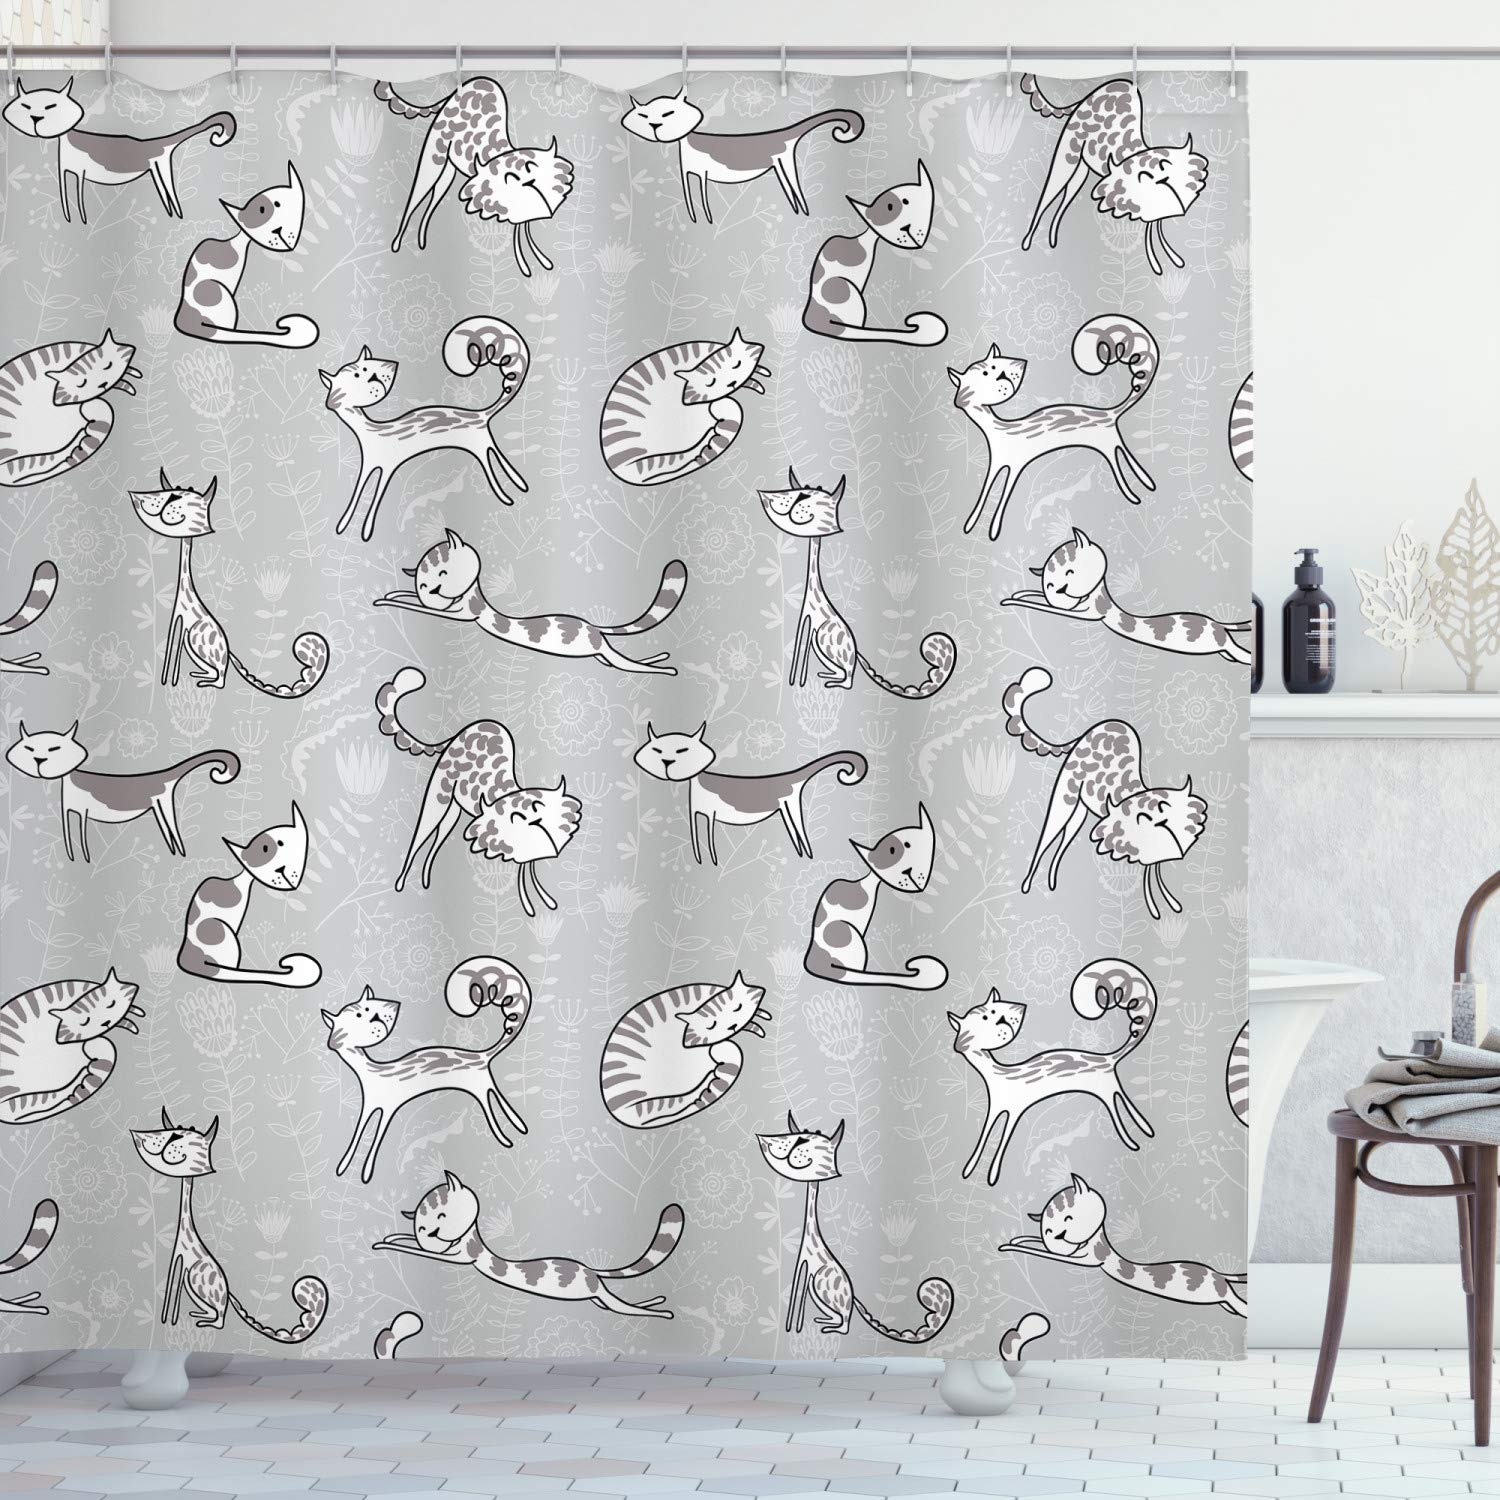 Ambesonne Grey Decor Shower Curtain, Cute Cat Figures Posing Over Floral Background Feline Kitten Kitty Cartoon Art Prints, Fabric Bathroom Decor Set with Hooks, 70 Inches, Grey